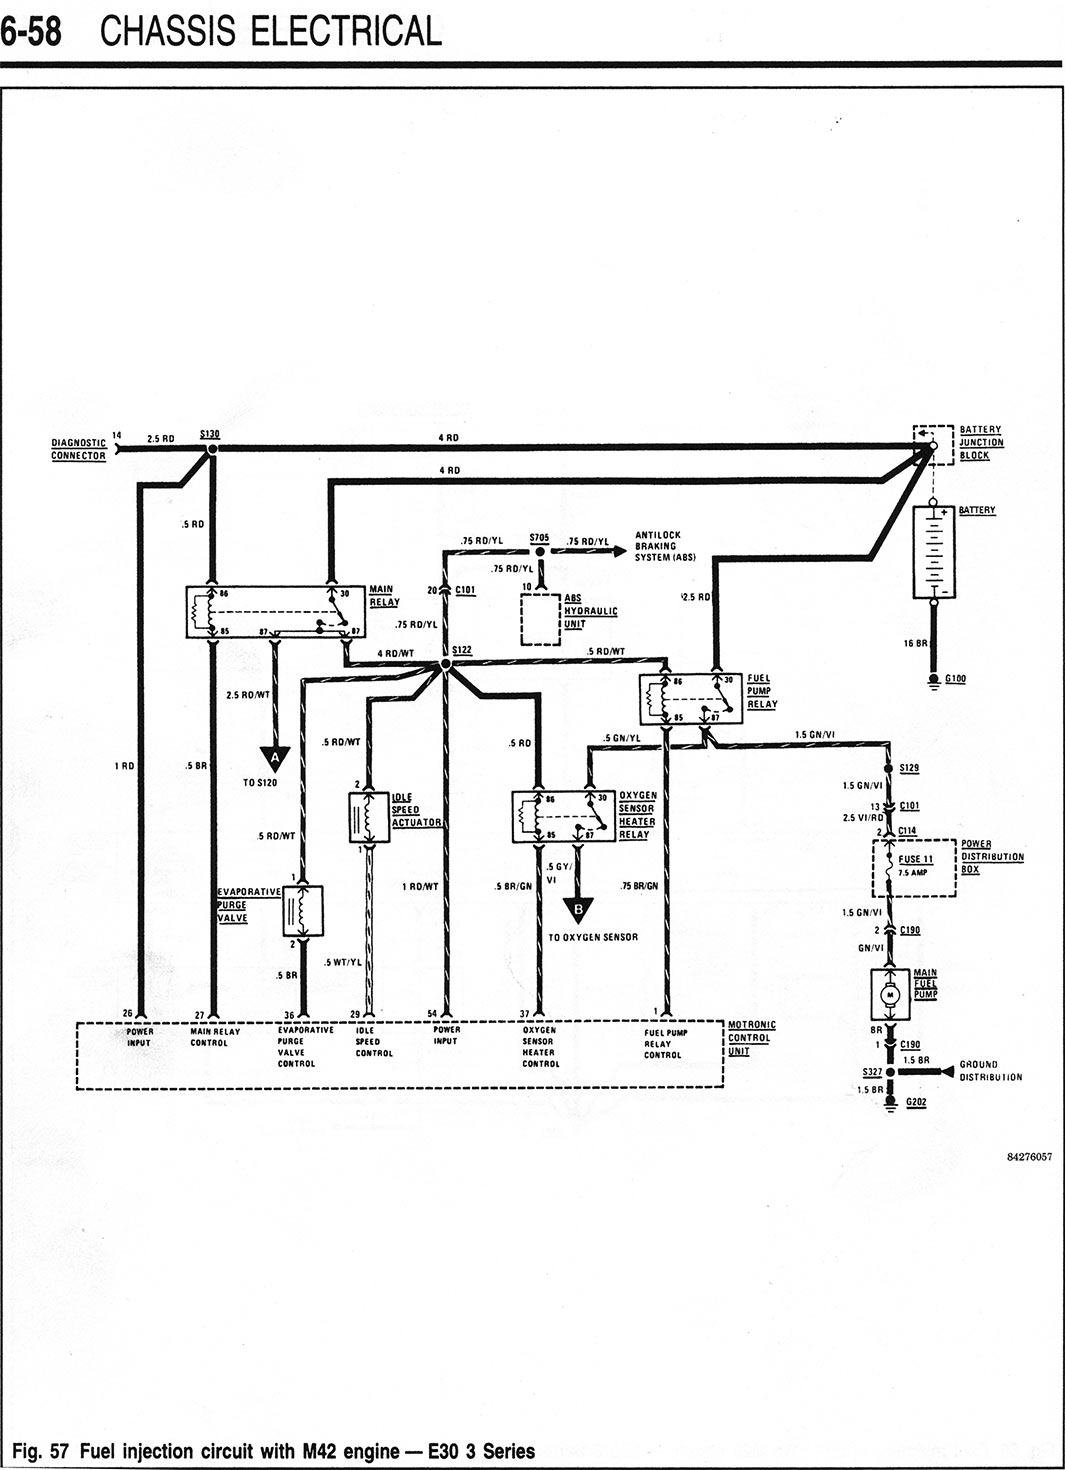 PG658 m42 starter fuel injection wiring diagrams 2003 bmw e46 wiring diagram at eliteediting.co